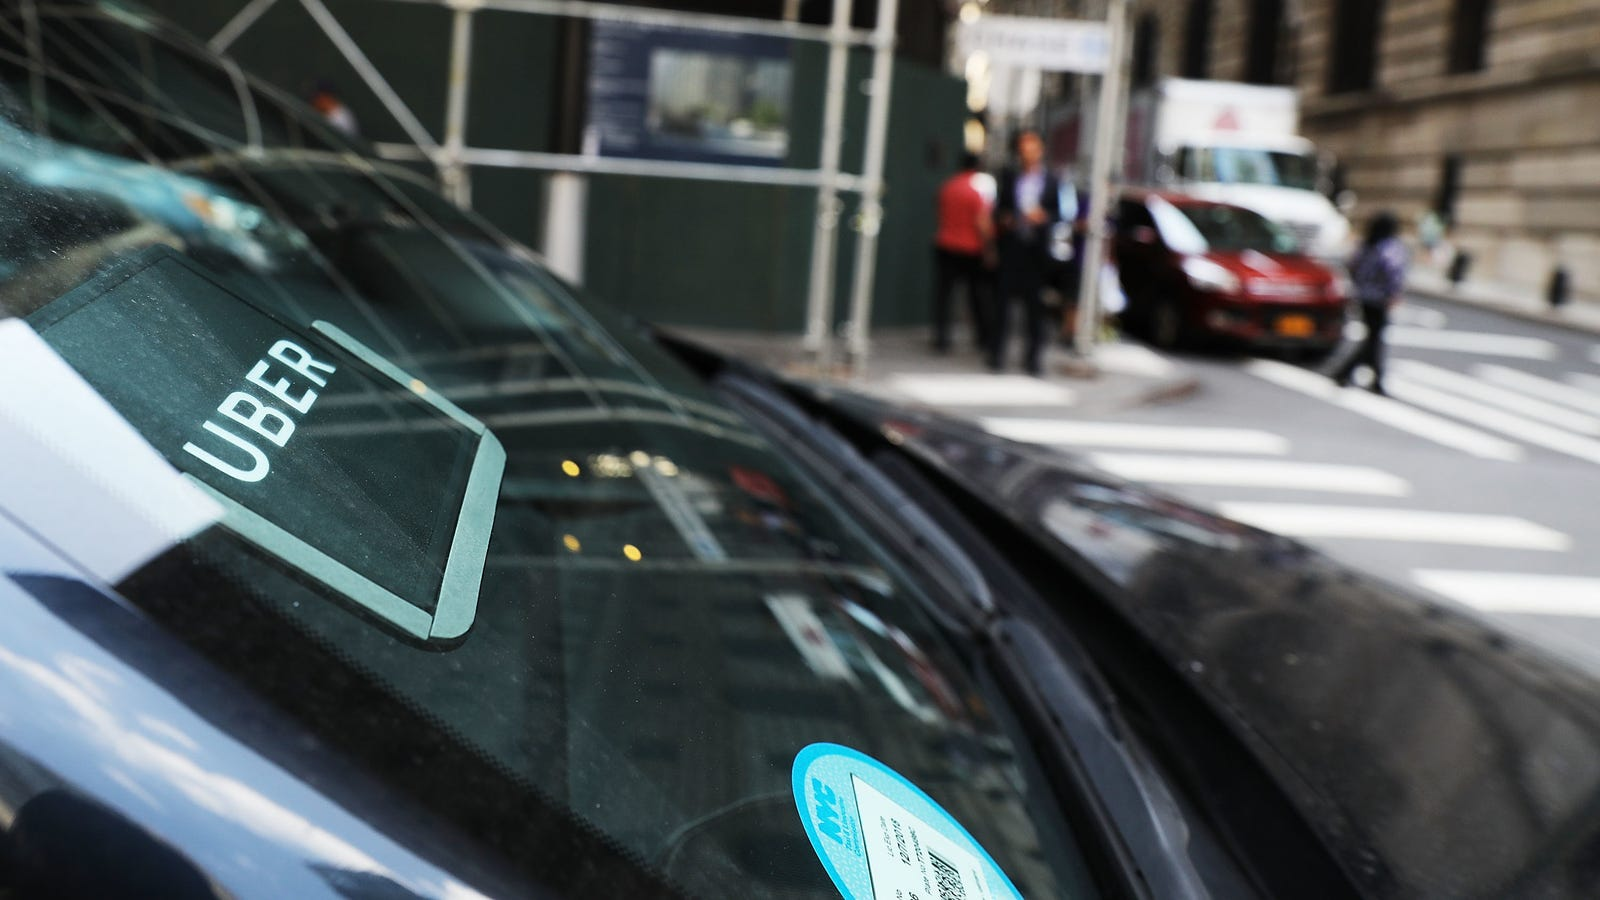 Former Employee Accuses Uber of Hacking and Surveillance